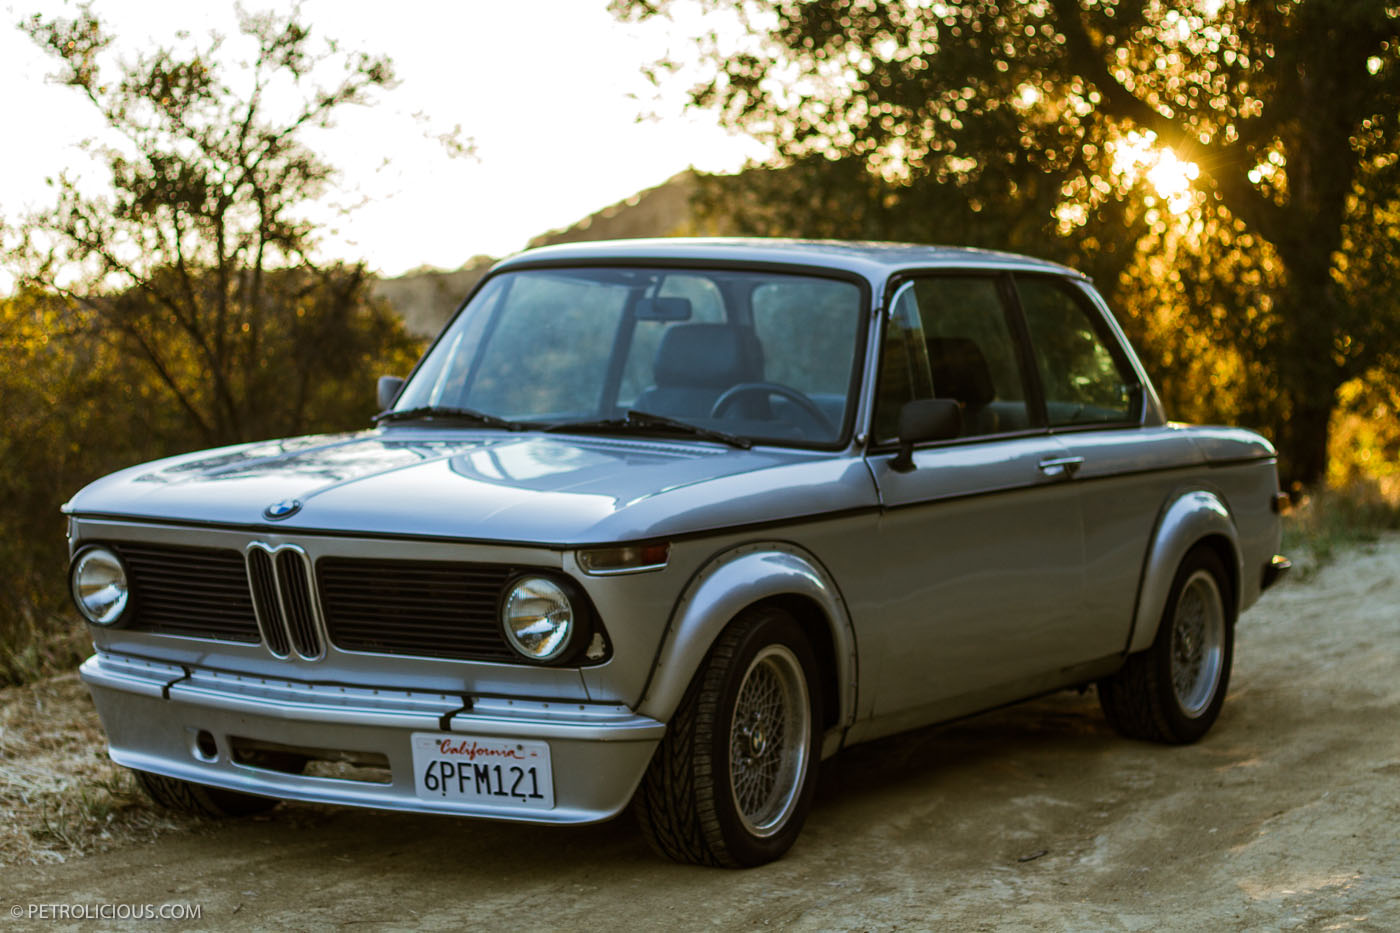 I Drove A Bmw 2002 And Found God Petrolicious HD Wallpapers Download free images and photos [musssic.tk]